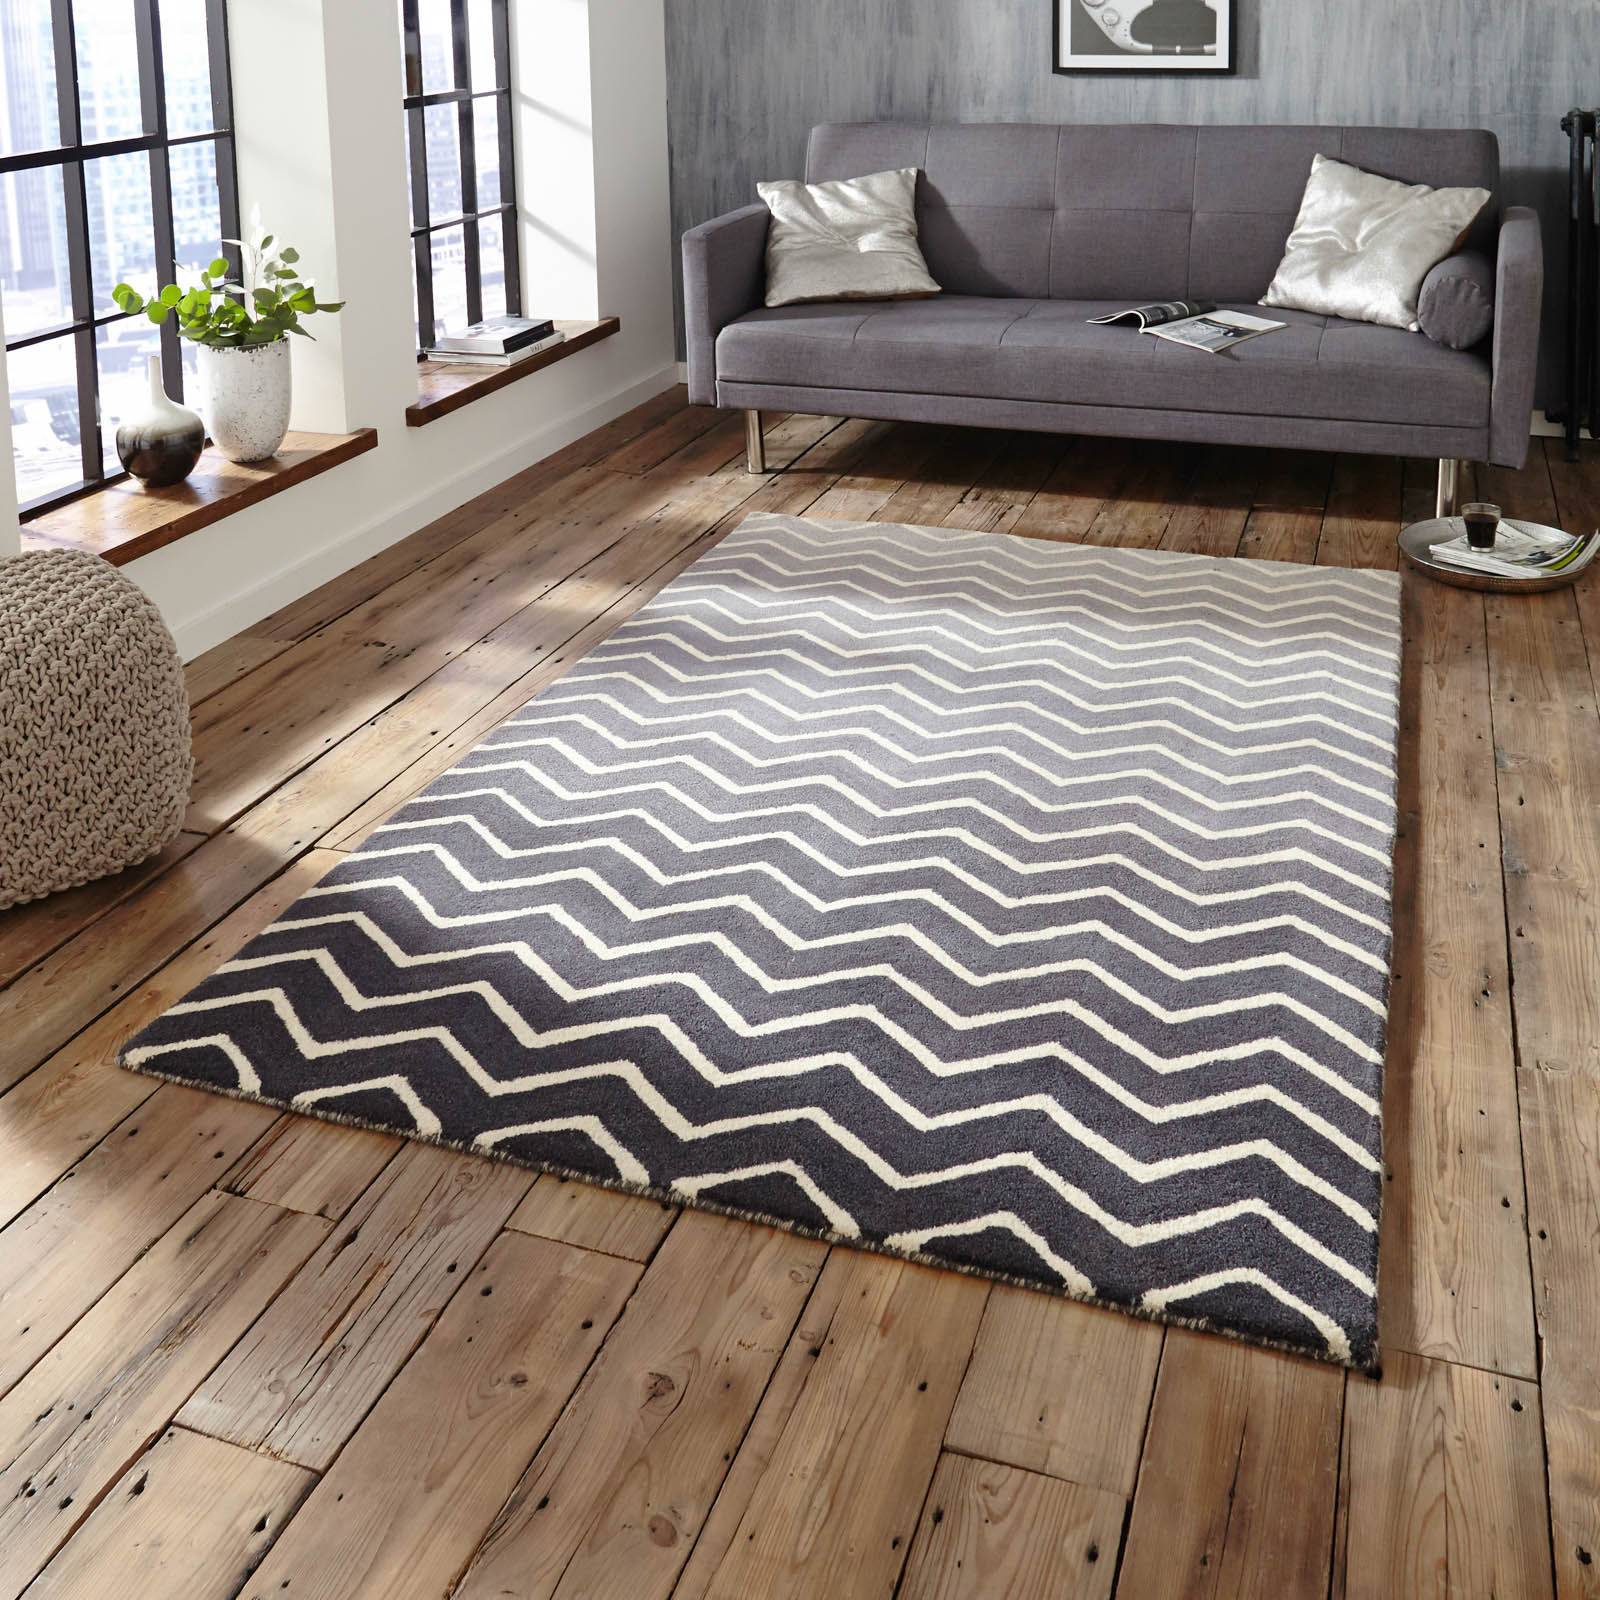 Spectrum SP22 Rugs In Grey White